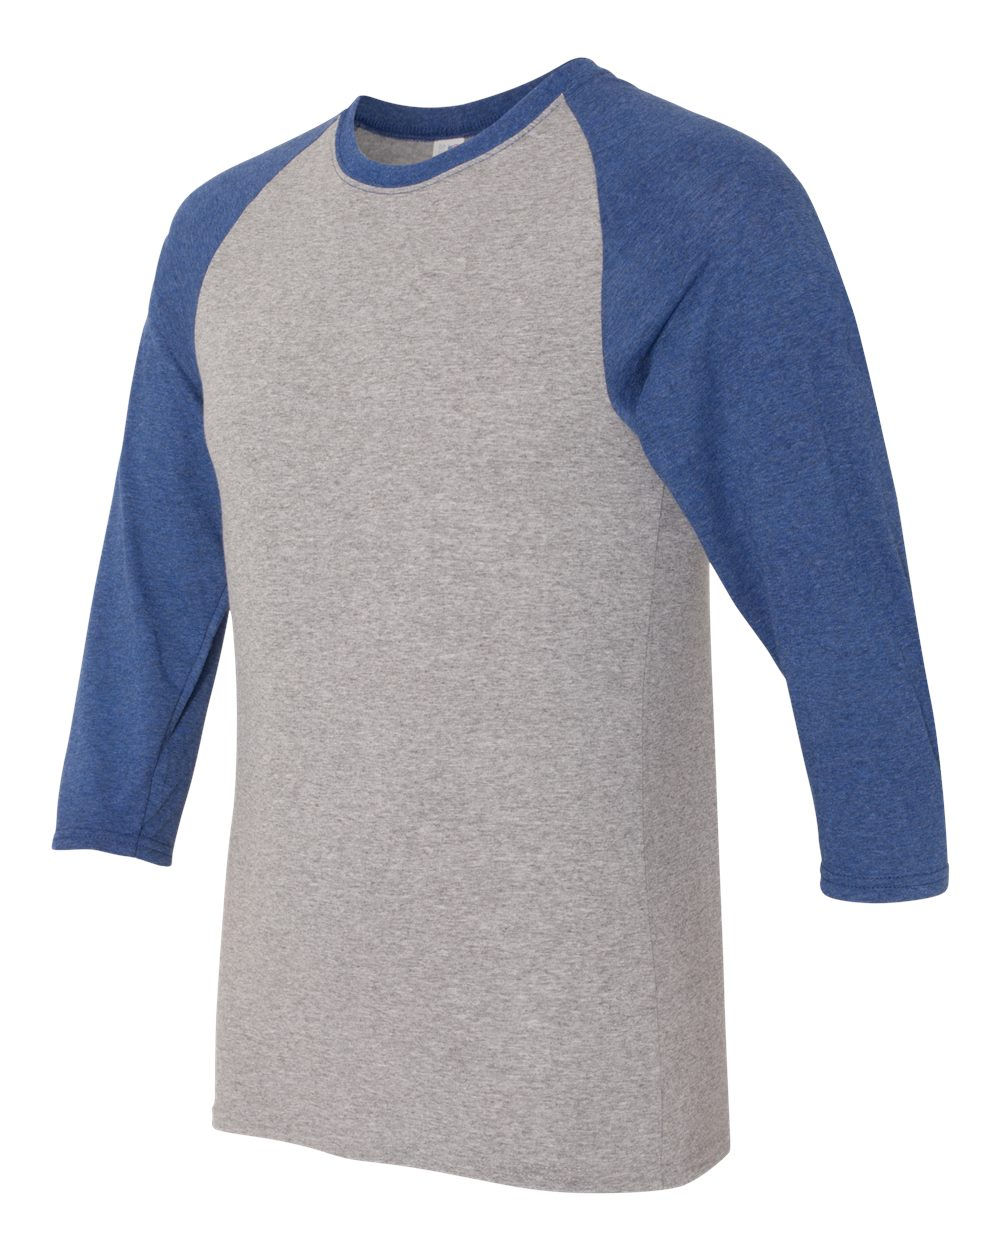 click to view Oxford/ True Blue Heather